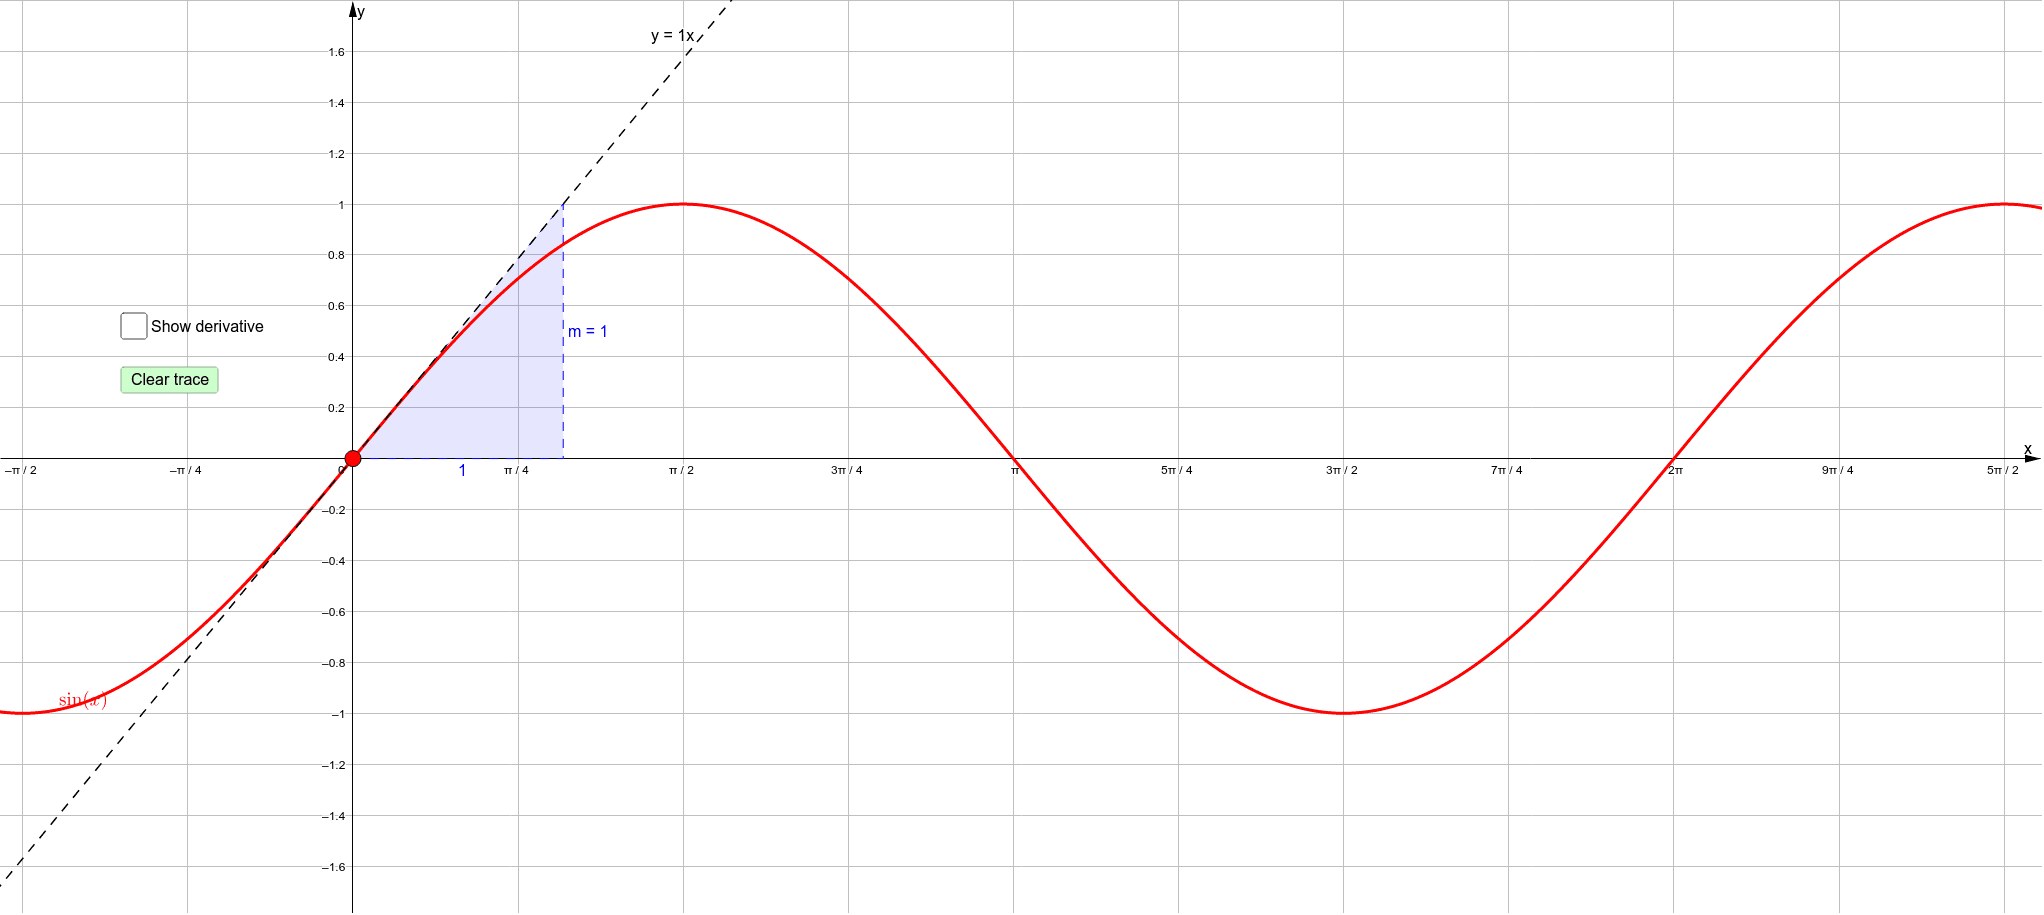 Drag the red dot along the curve and watch how the gradient of the tangent line changes. Click the checkbox to begin tracing out the derivative of the sine function. Press Enter to start activity